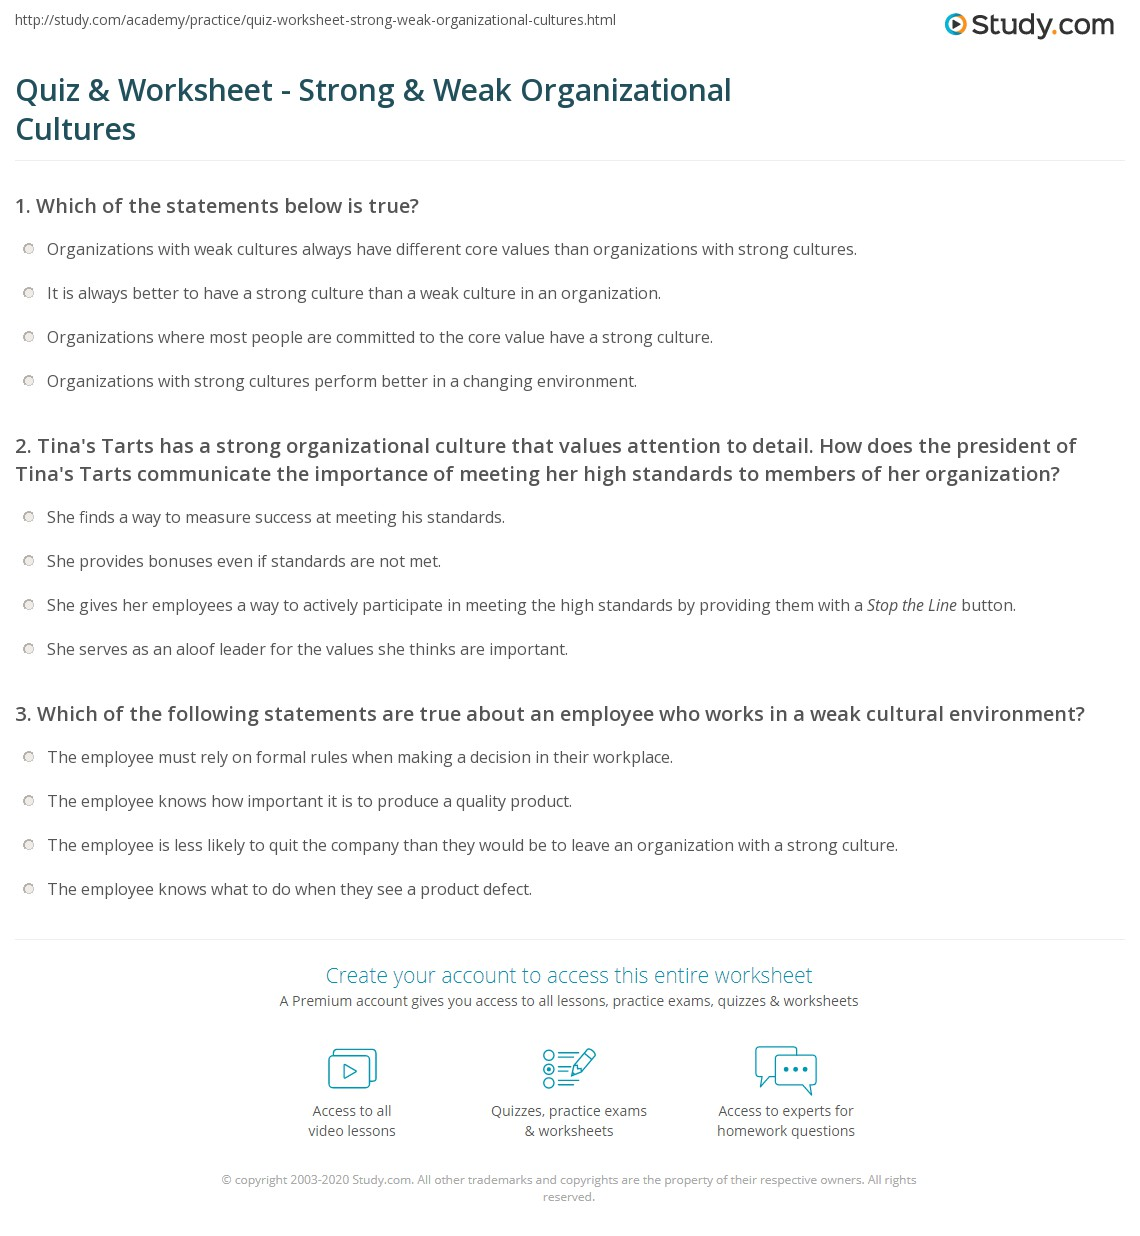 quiz worksheet strong weak organizational cultures com kelley s ketchup has a strong organizational culture that values attention to detail how does the president of kelley s ketchup communicate the importance